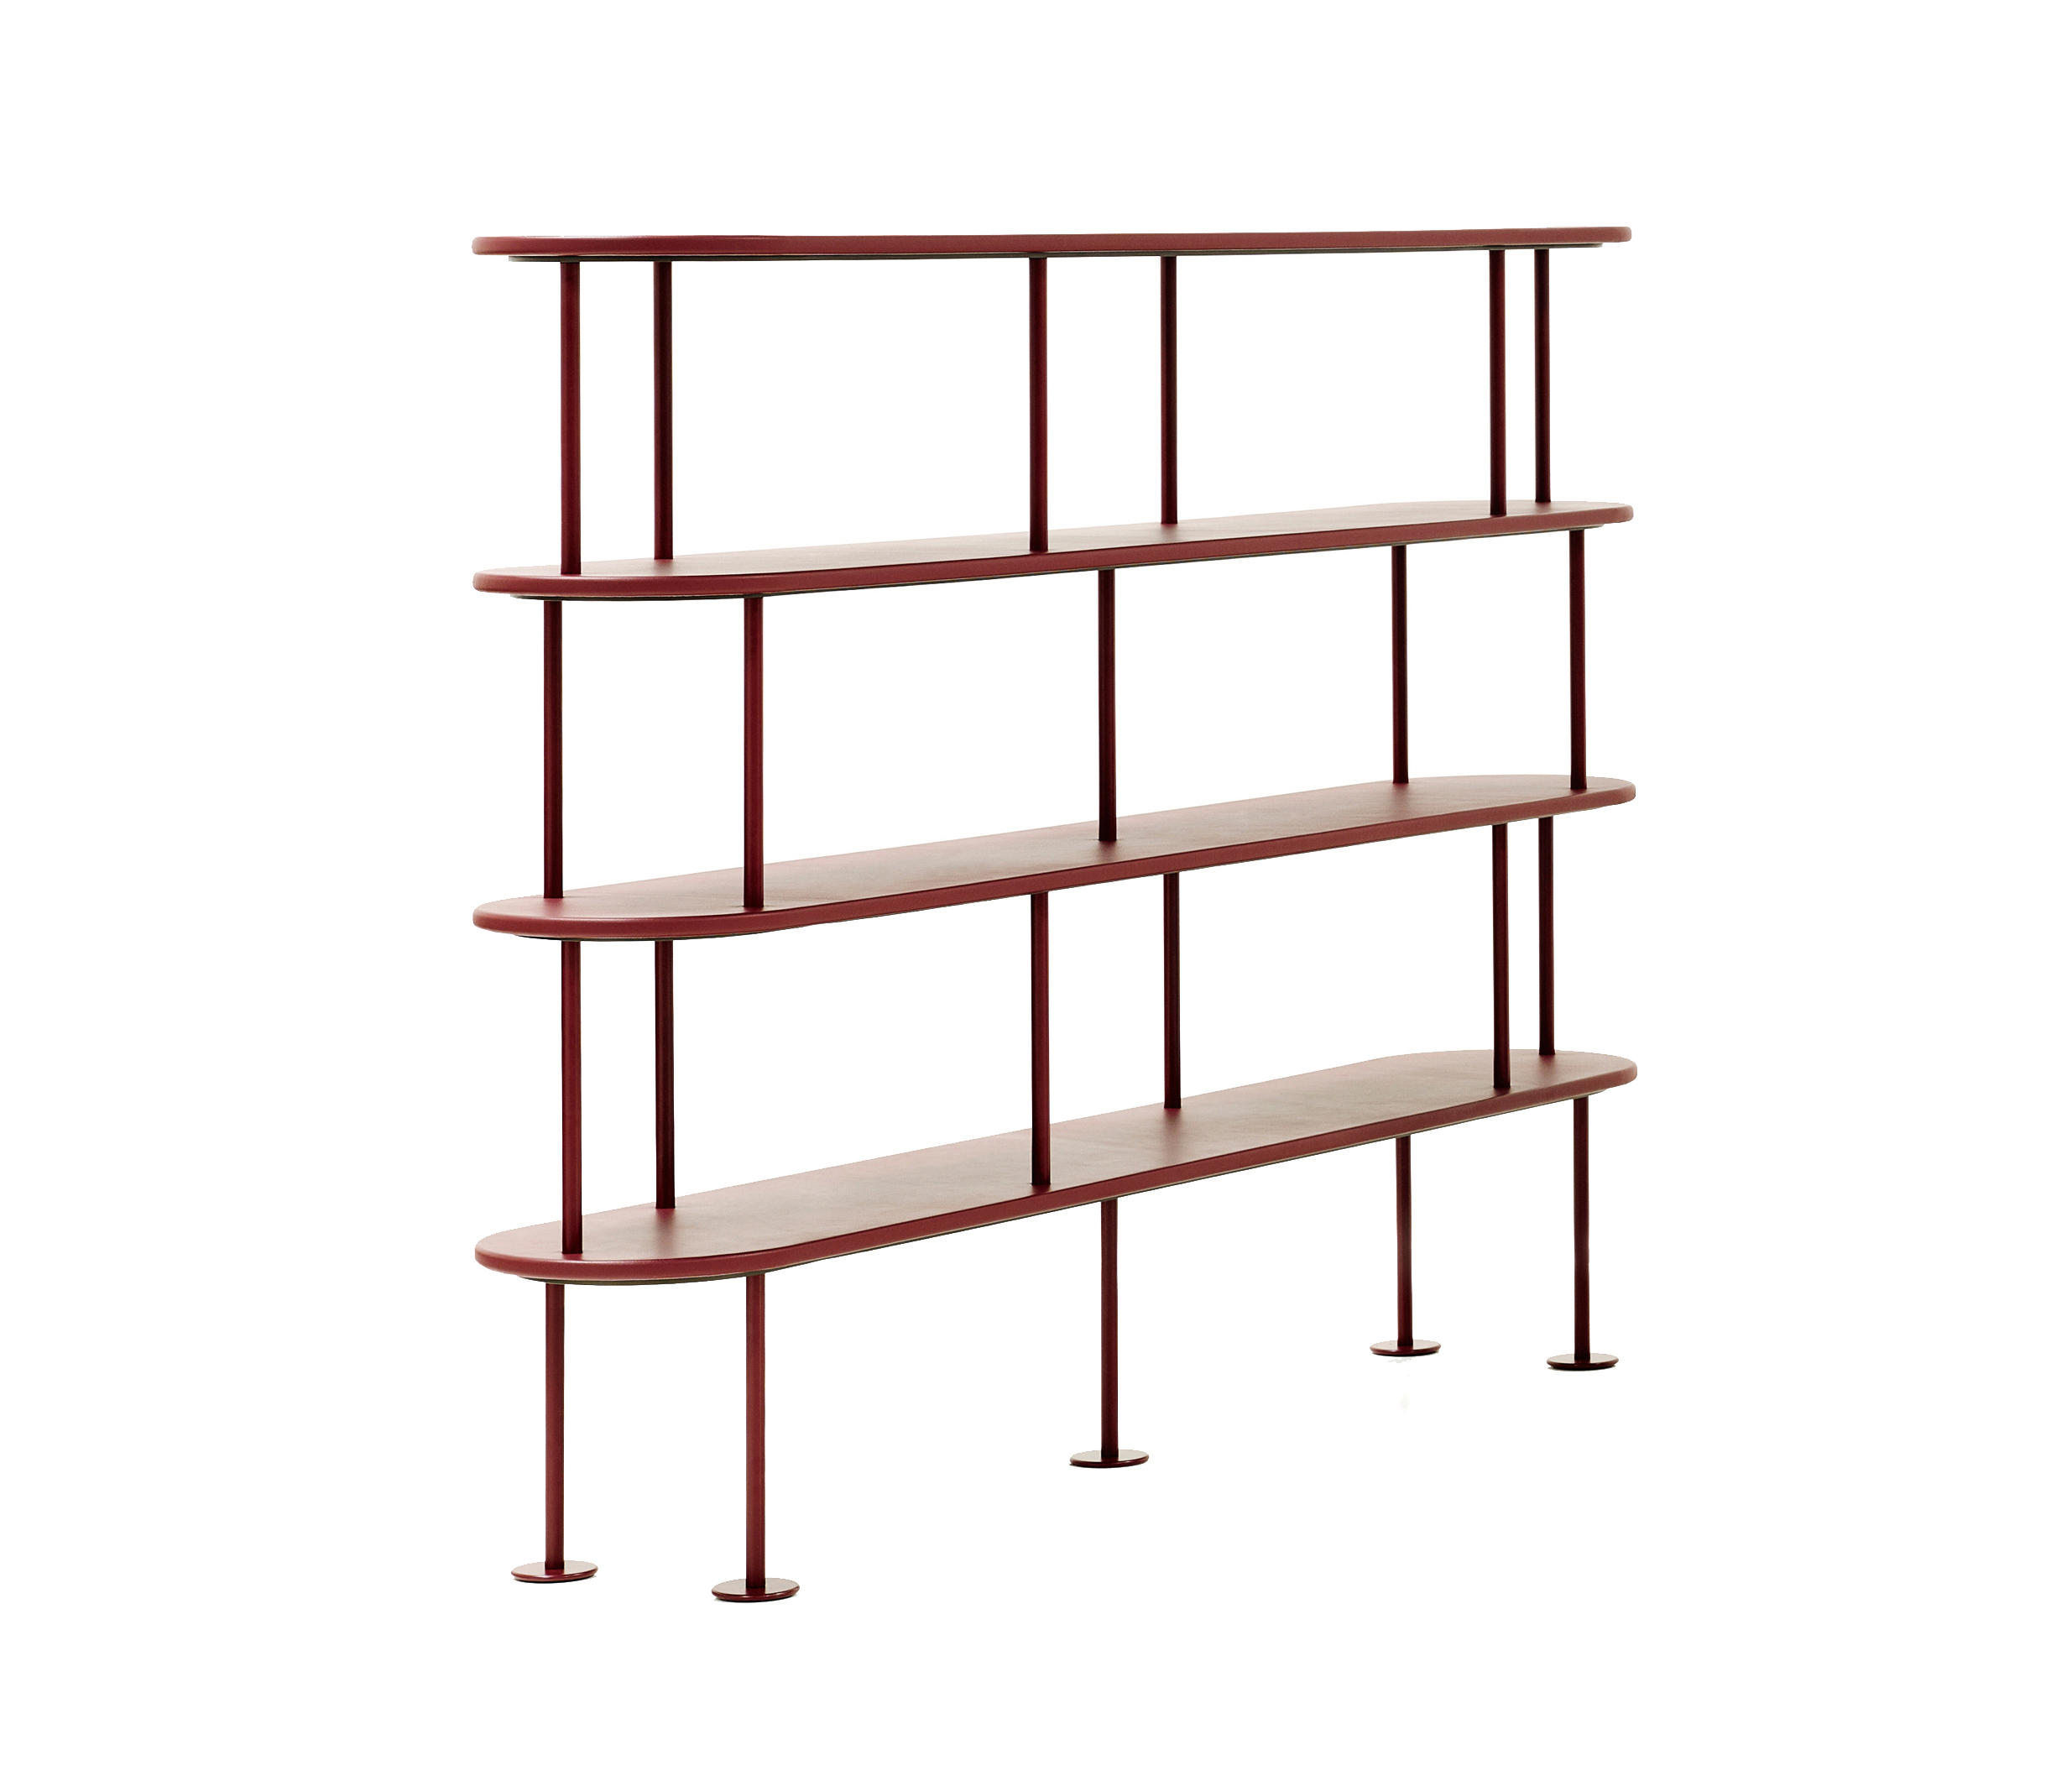 Md Shelf Estanter A De Wittmann Architonic # Wittmann Muebles